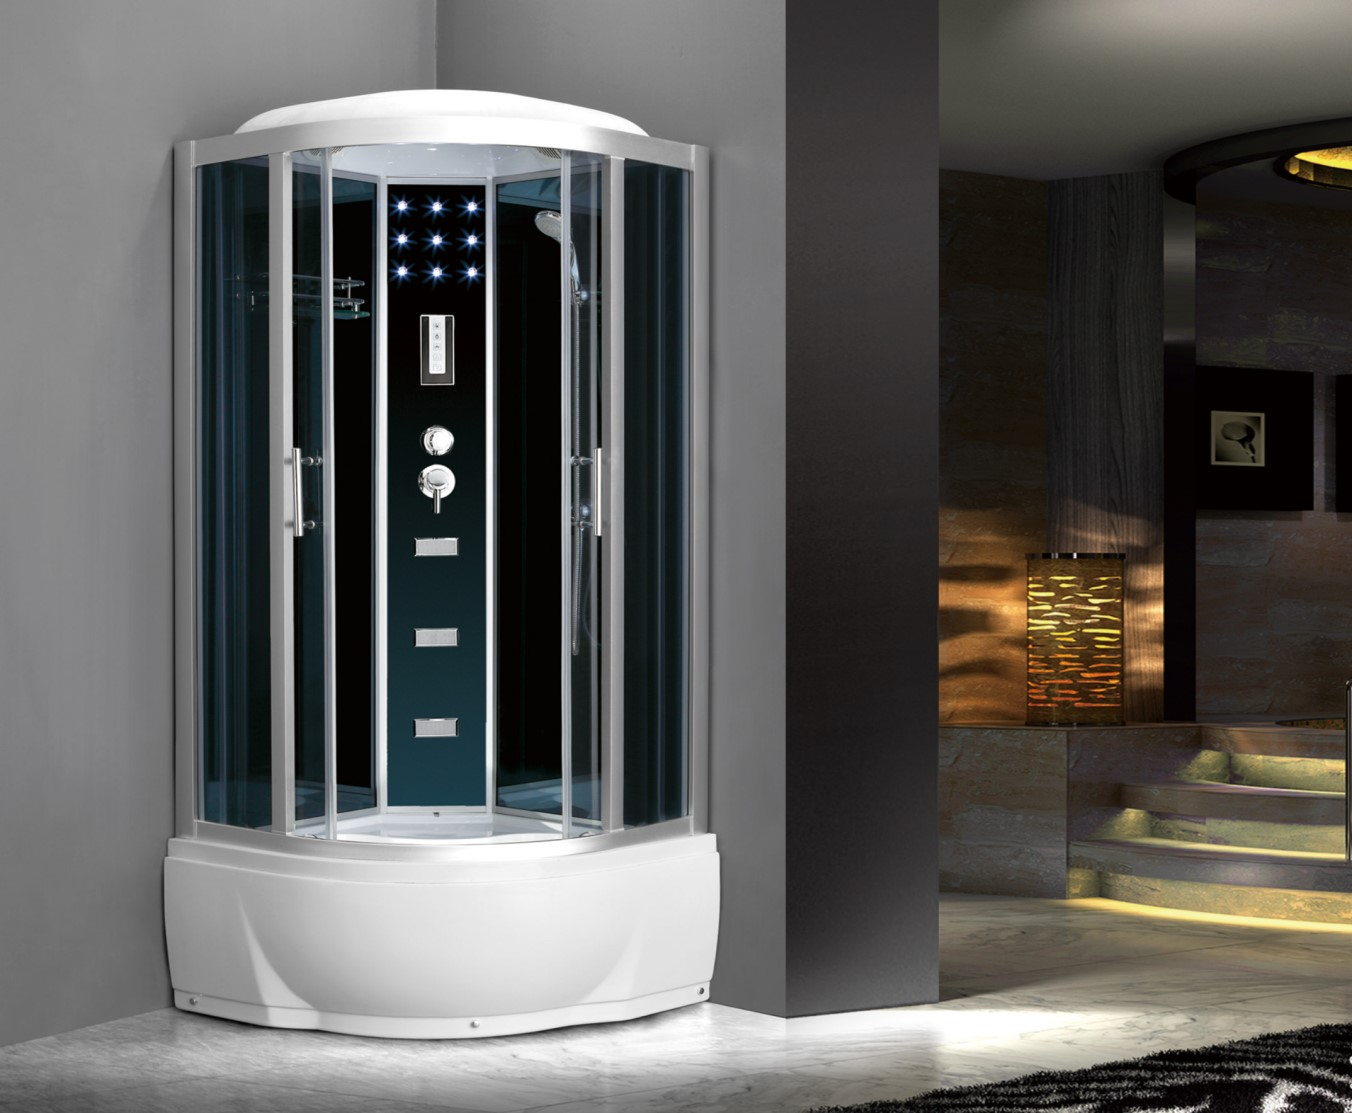 China Jet Tub Shower Combination Room With Star Lights